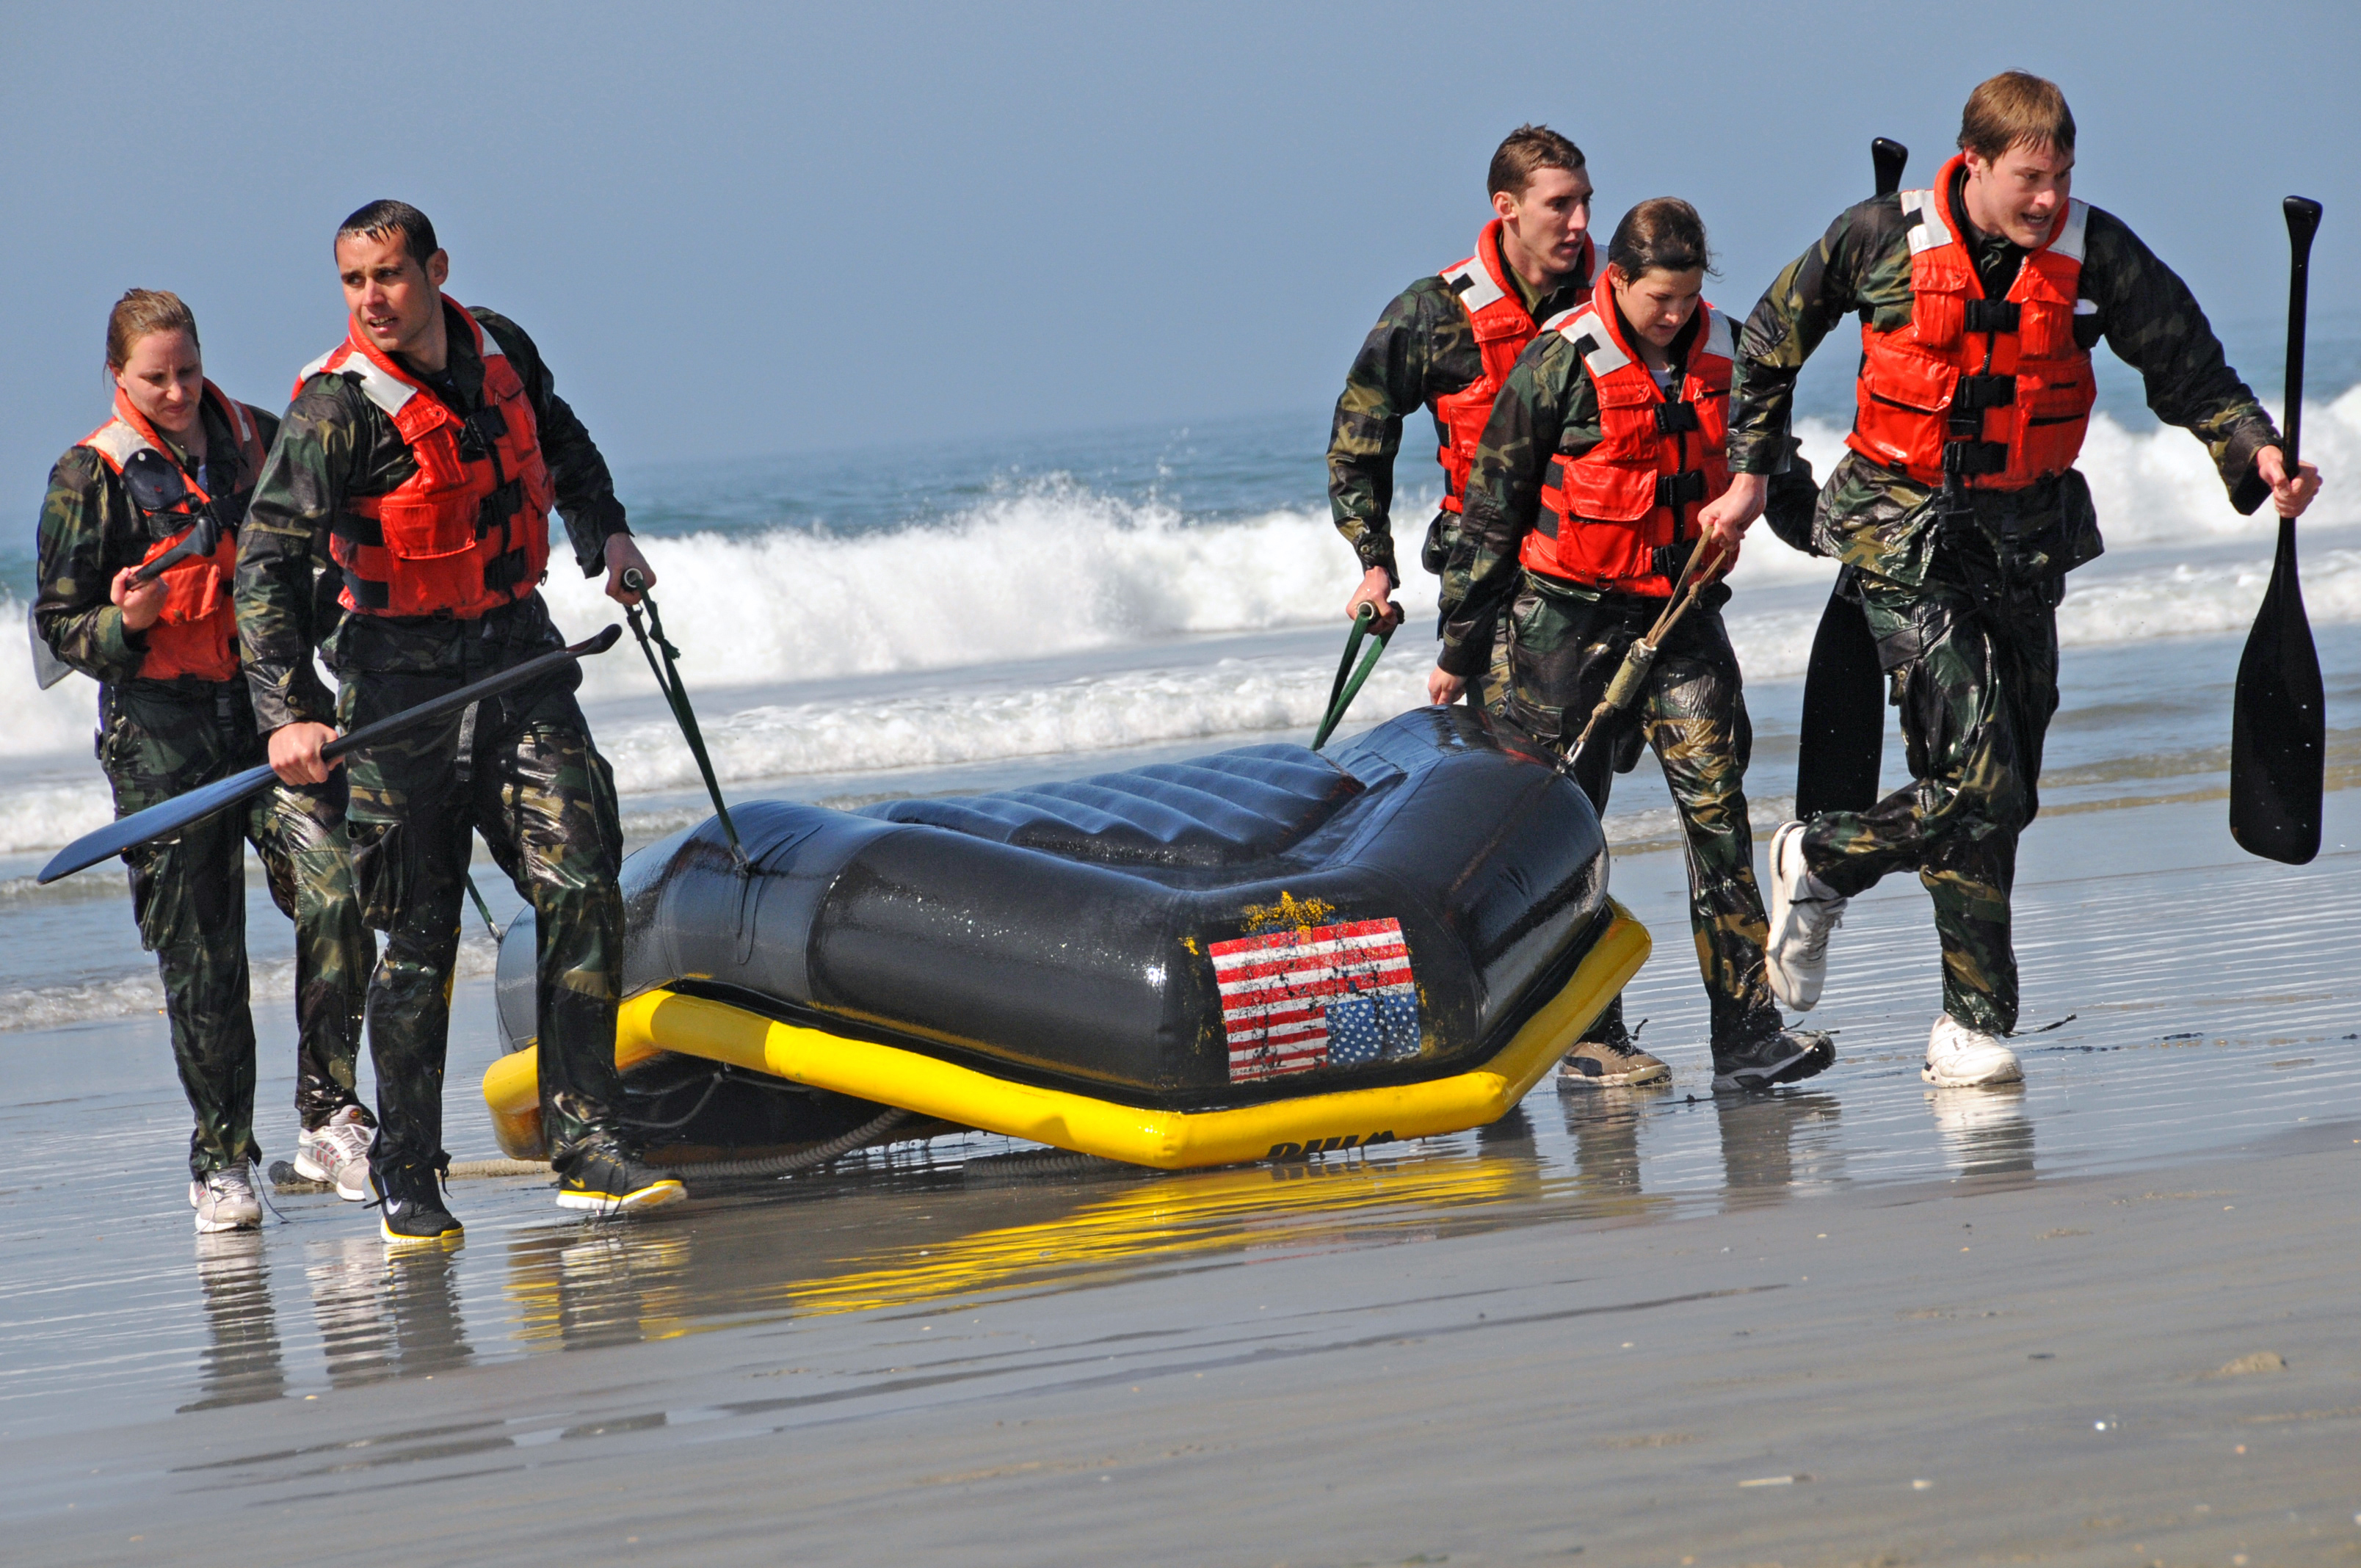 File:US Navy 090318-N-0413B-035 Members of the United States ...